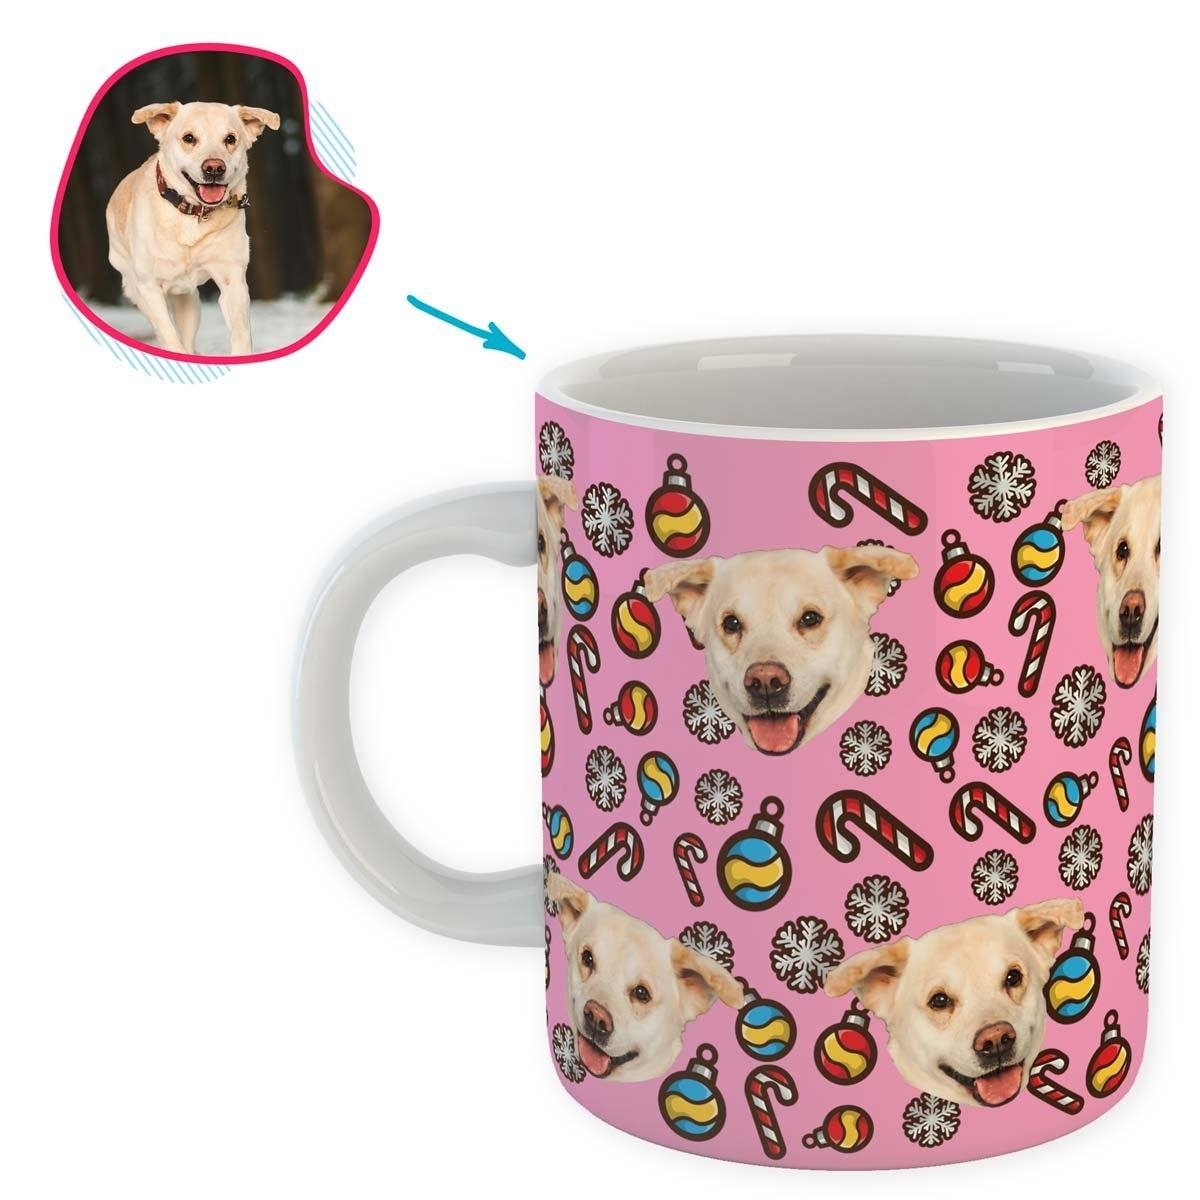 pink Christmas Tree Toy mug personalized with photo of face printed on it